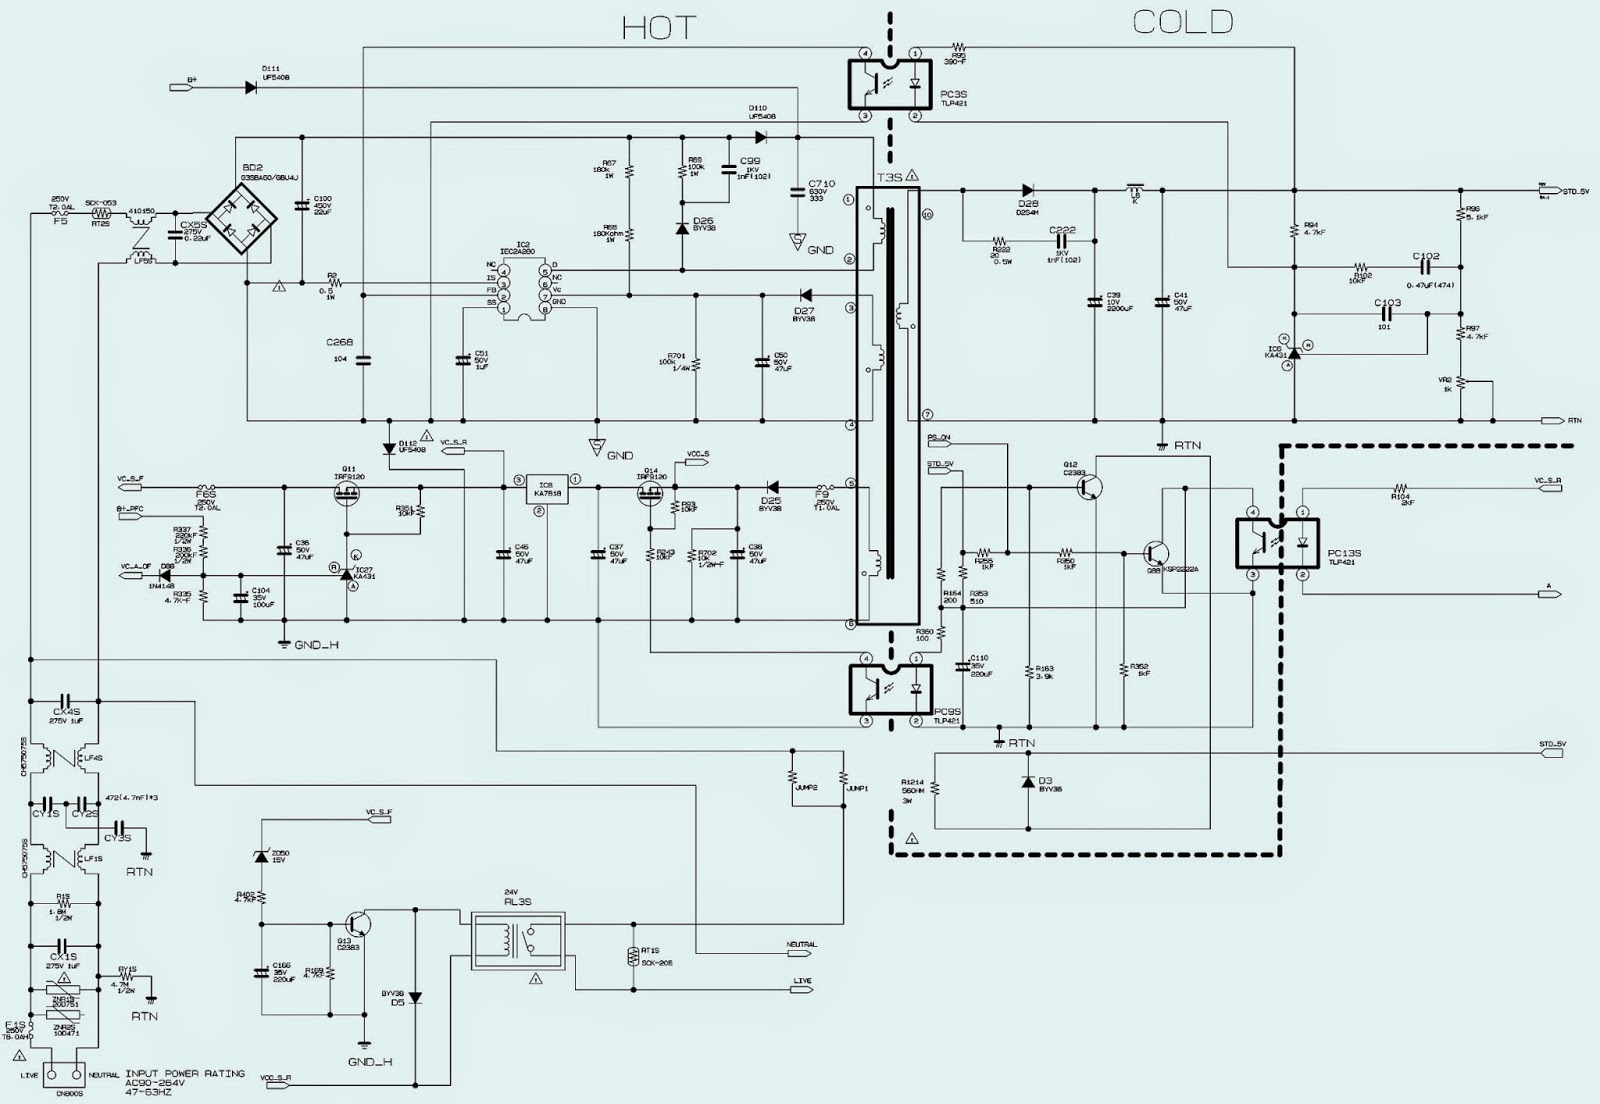 wiring samsung schematic smm pircam bn 96 - samsung power supply schematic (circuit diagram ... #5